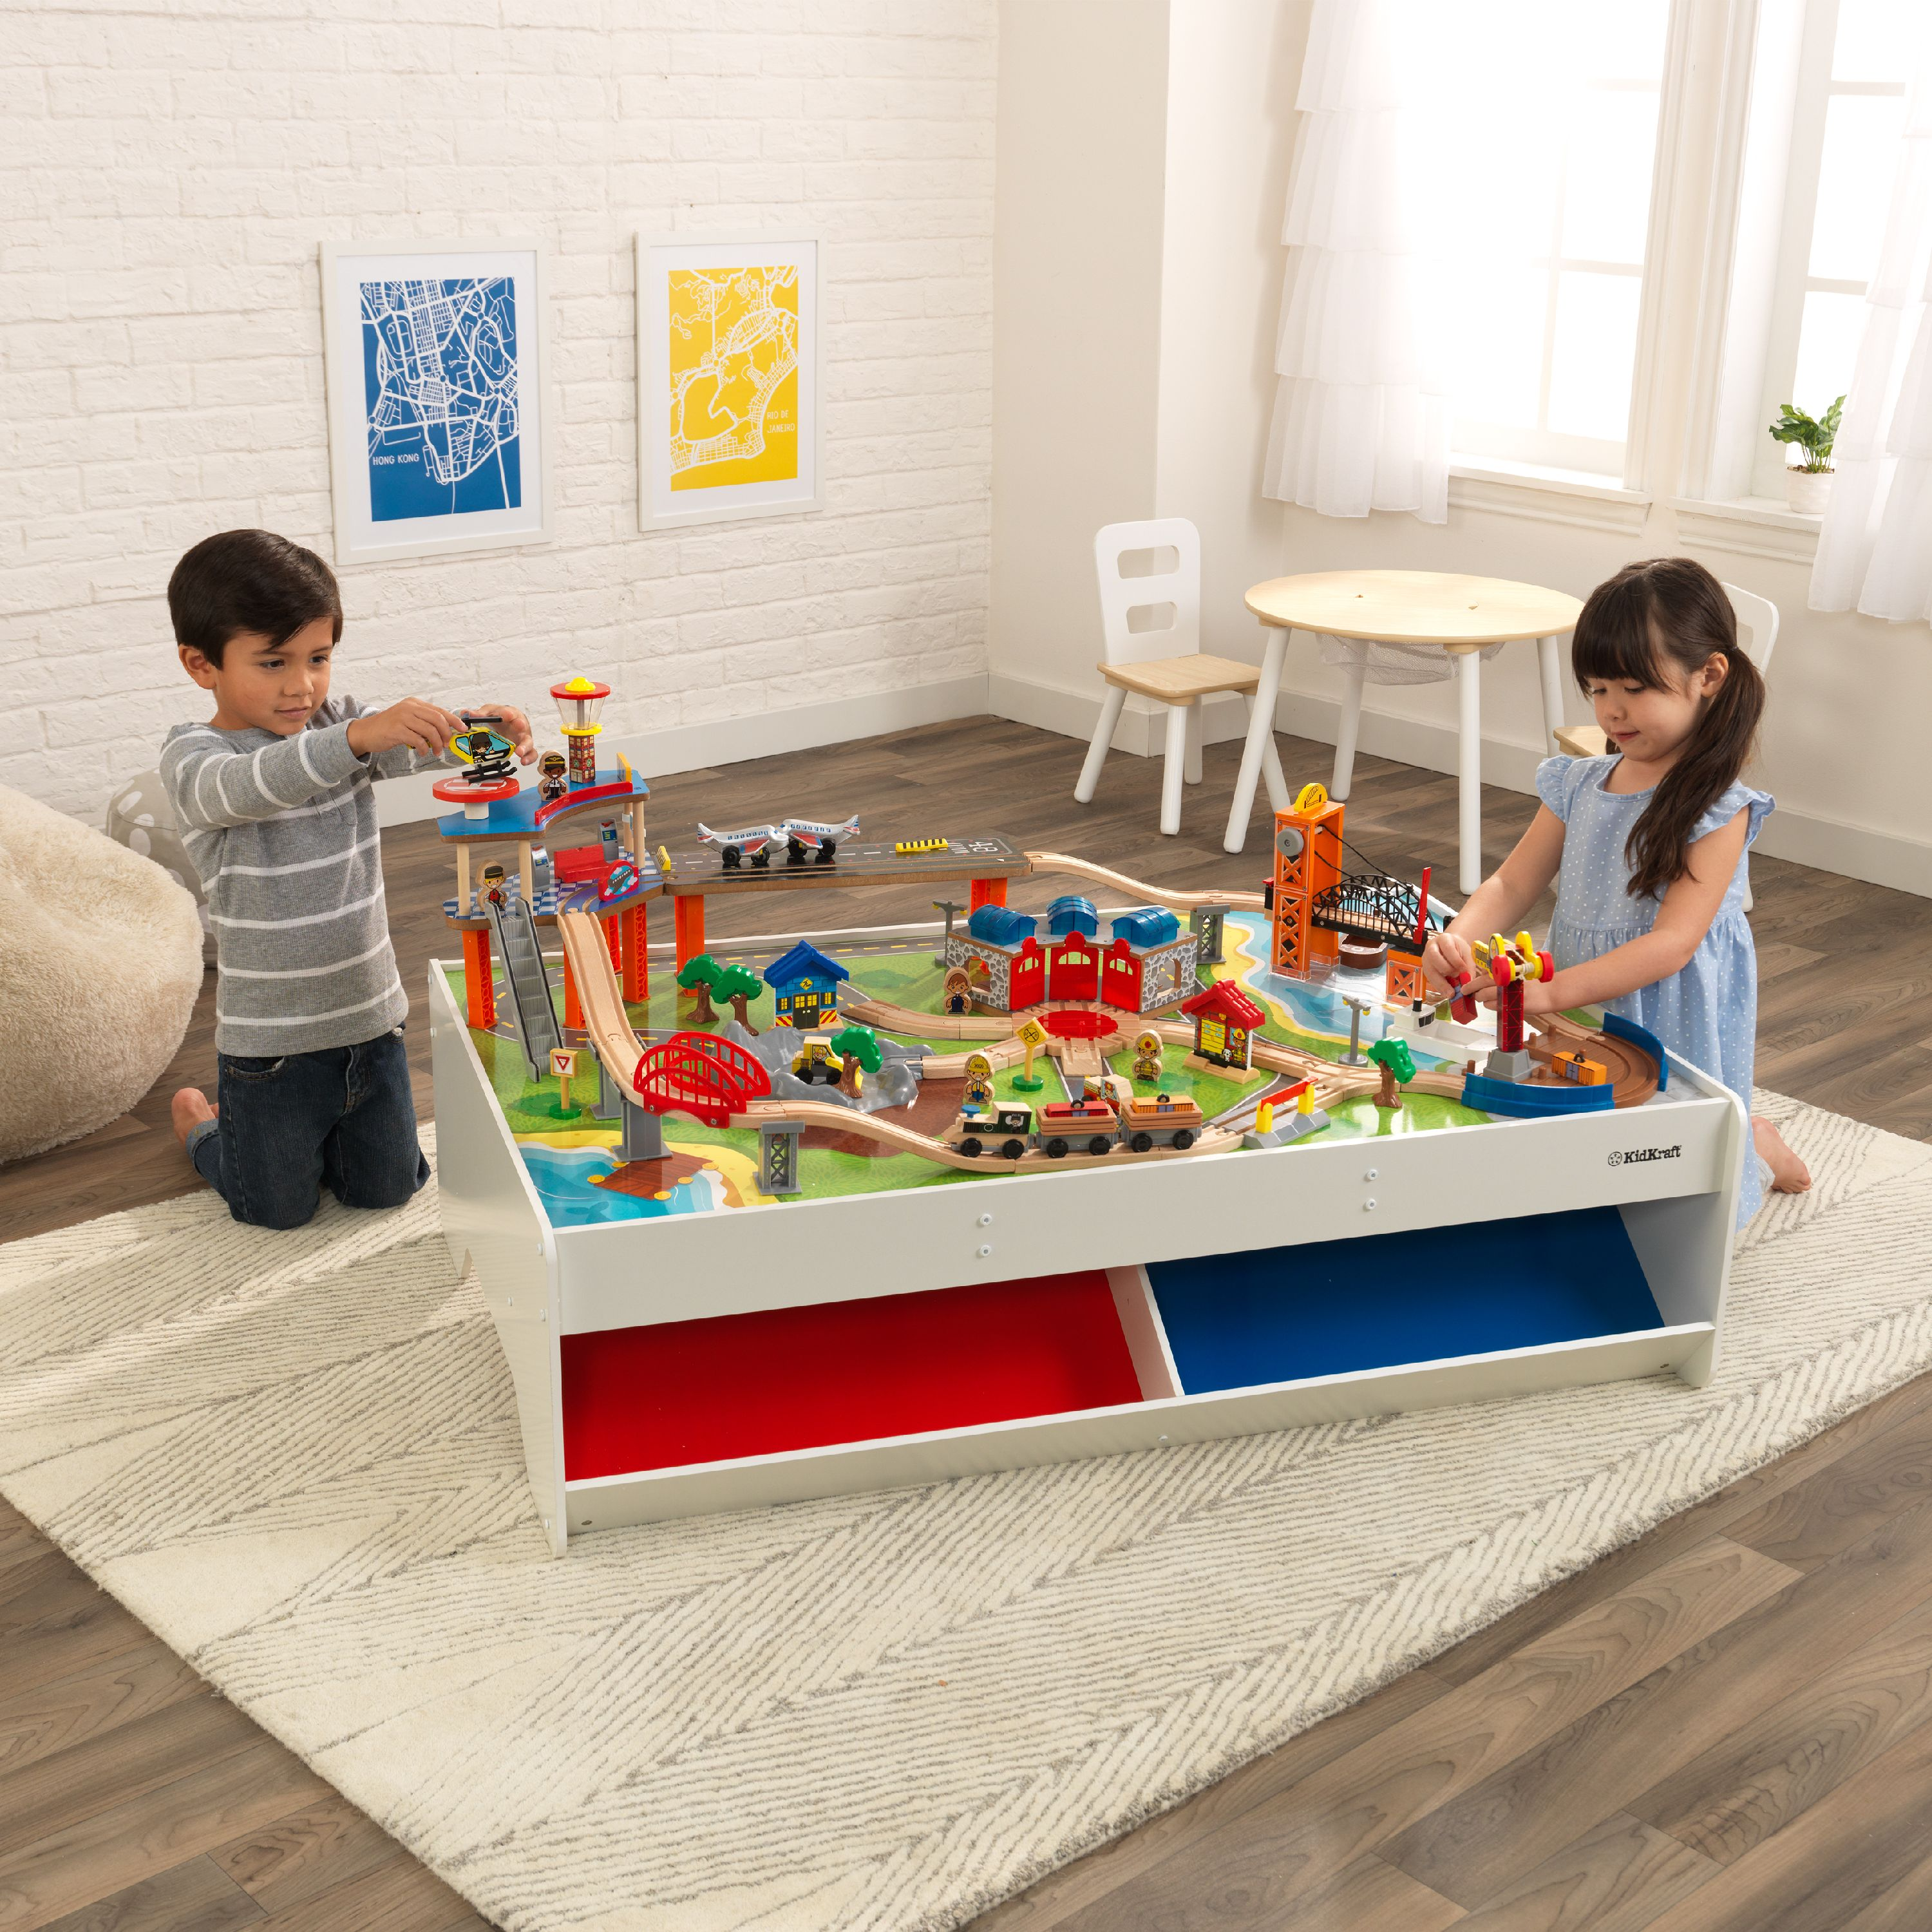 KidKraft Railway Express Wooden Train Set & Table with 79 Pieces and Two Storage Bins by KidKraft